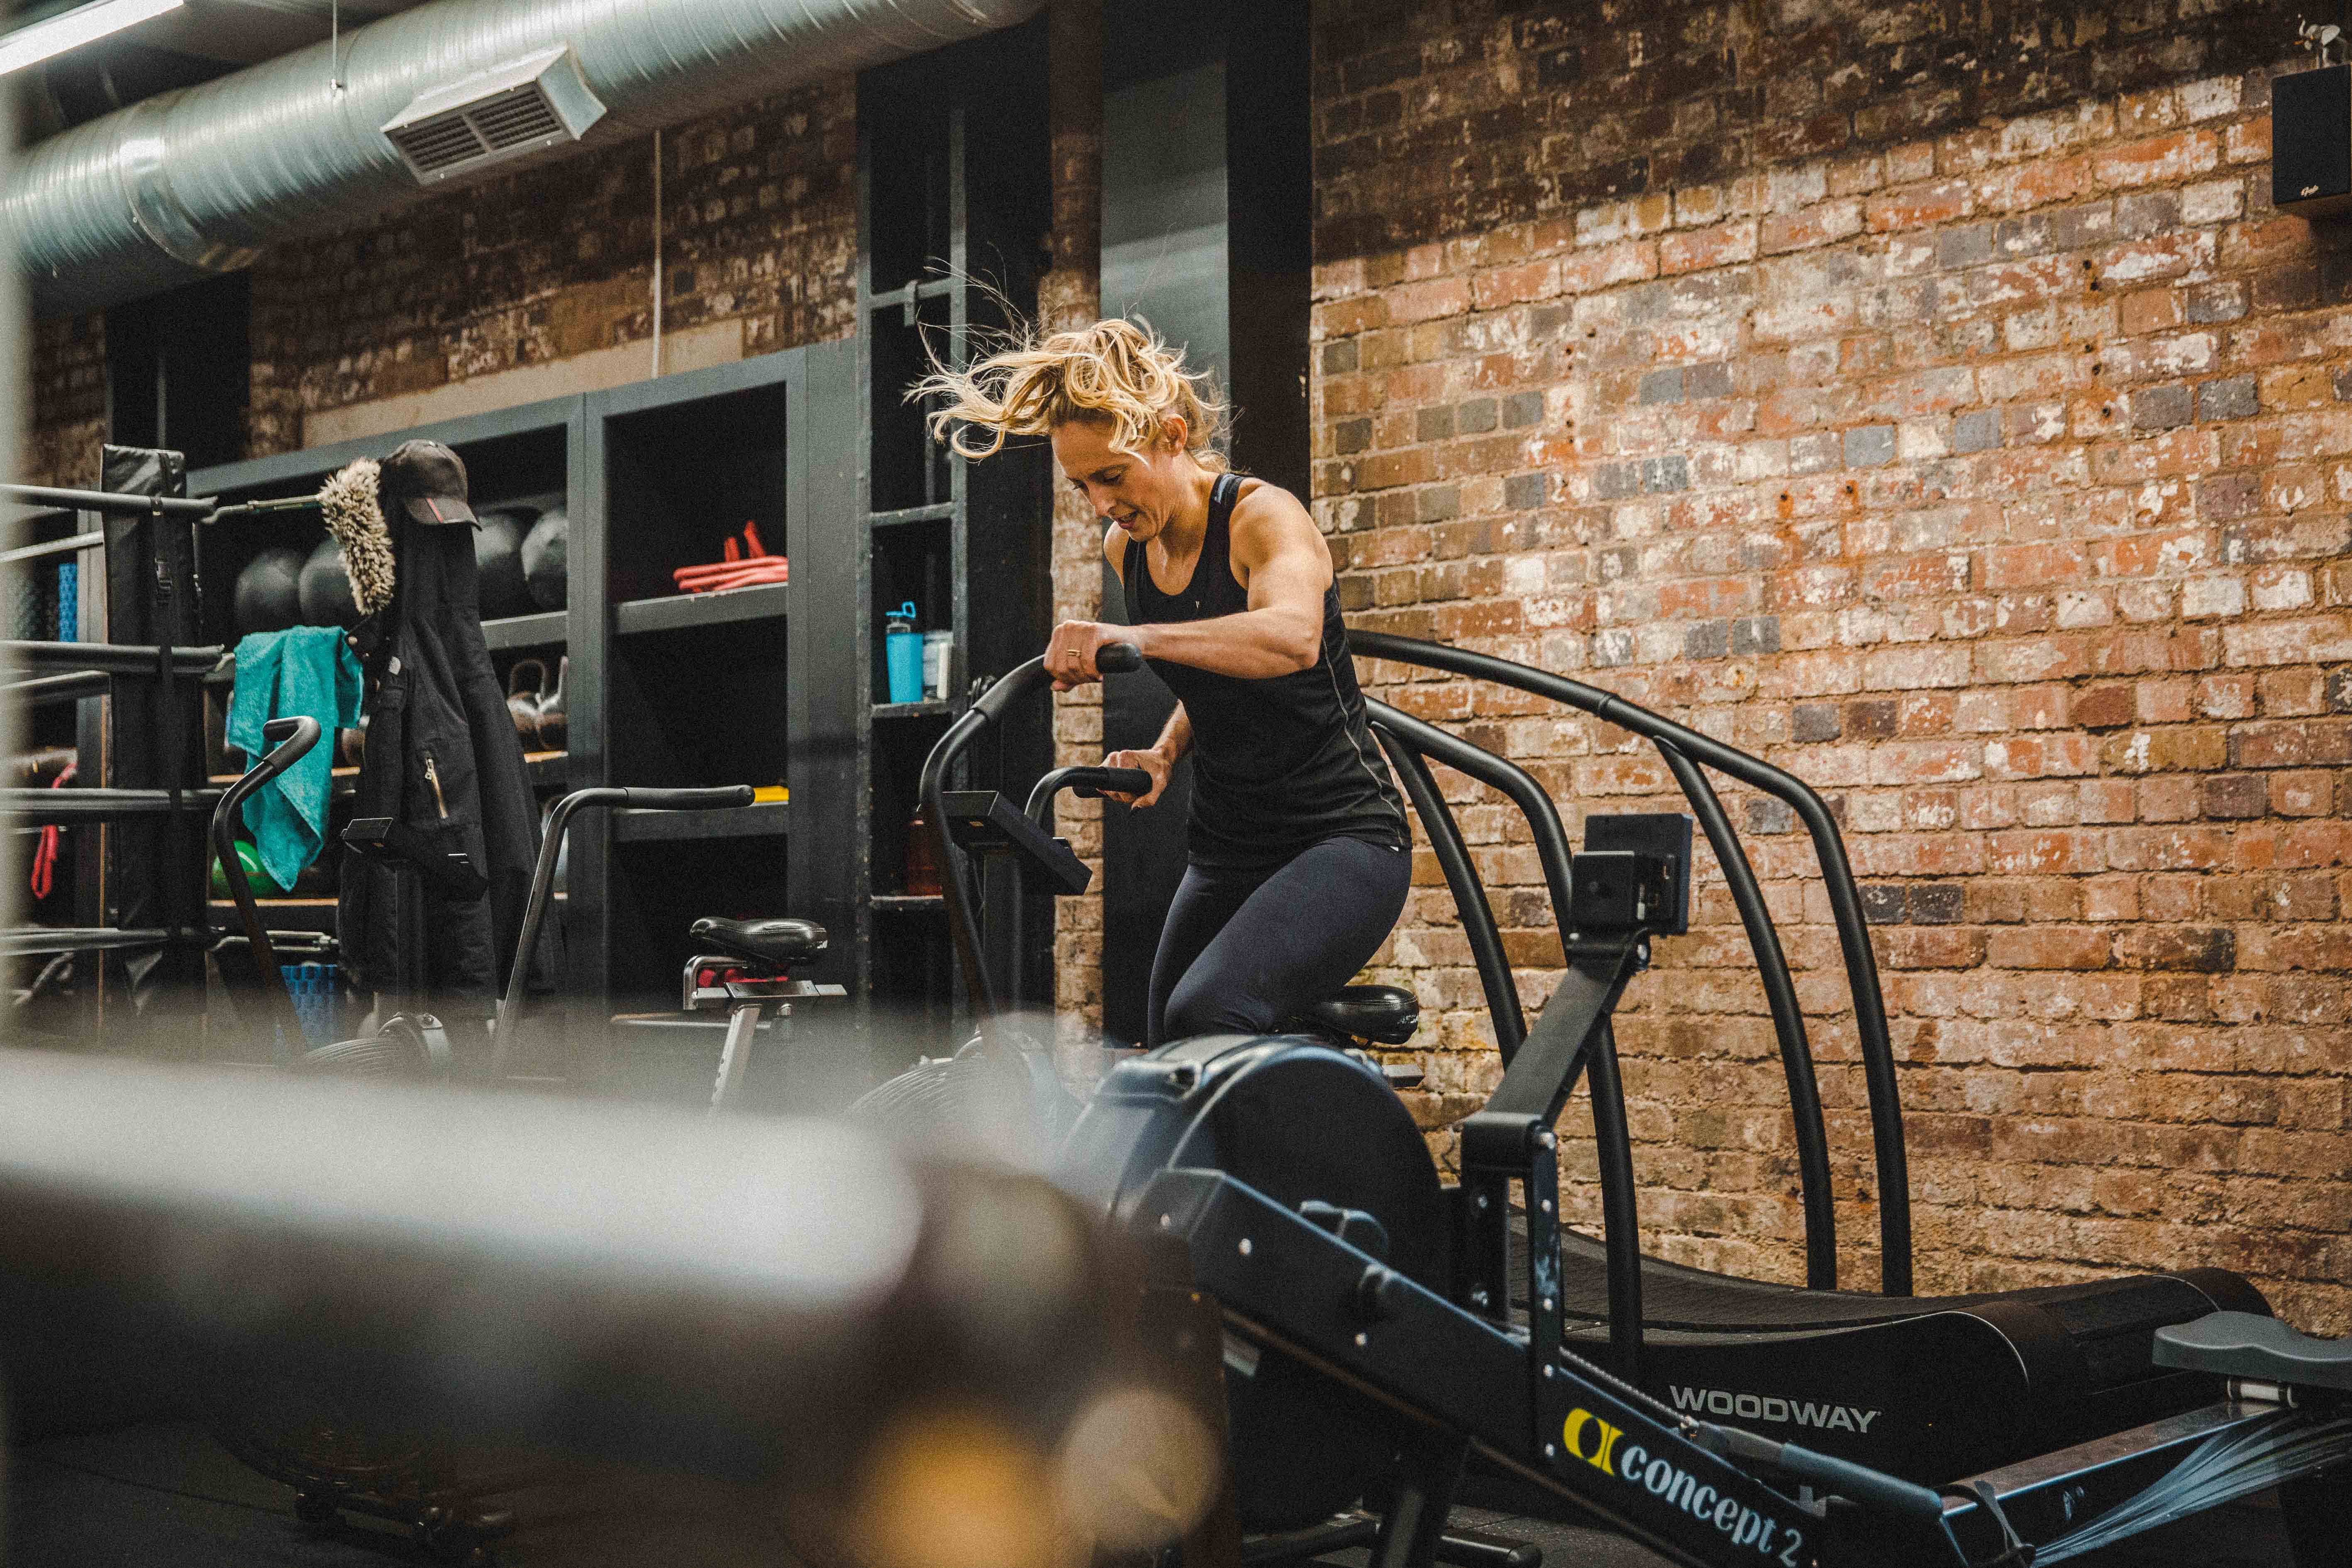 woman using exercise equipment at gym